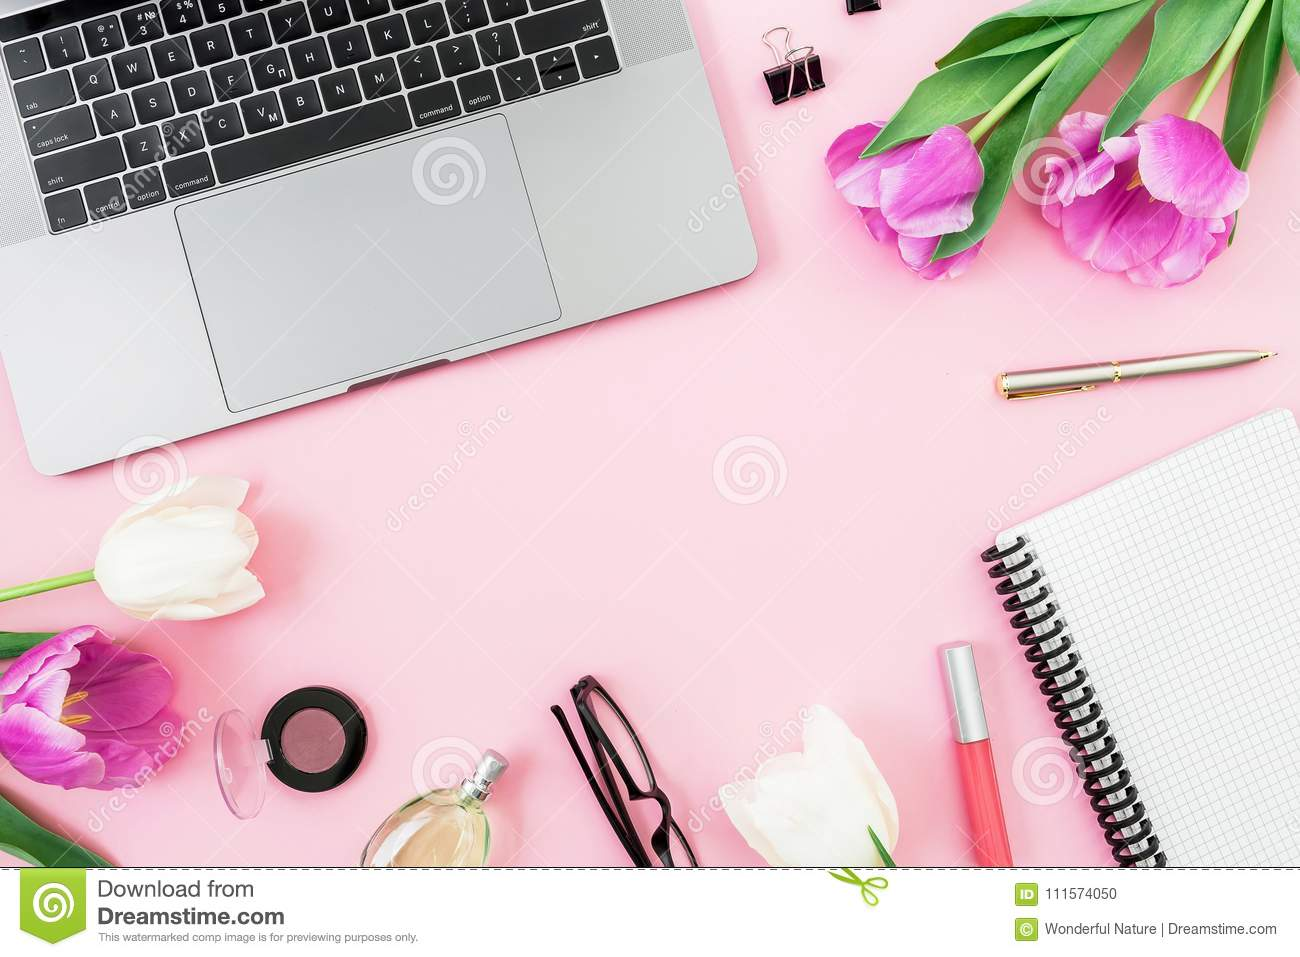 Feminine Office Desk With Laptop Tulip Flowers Cosmetics Glasses - Best of flower powerpoint background concept